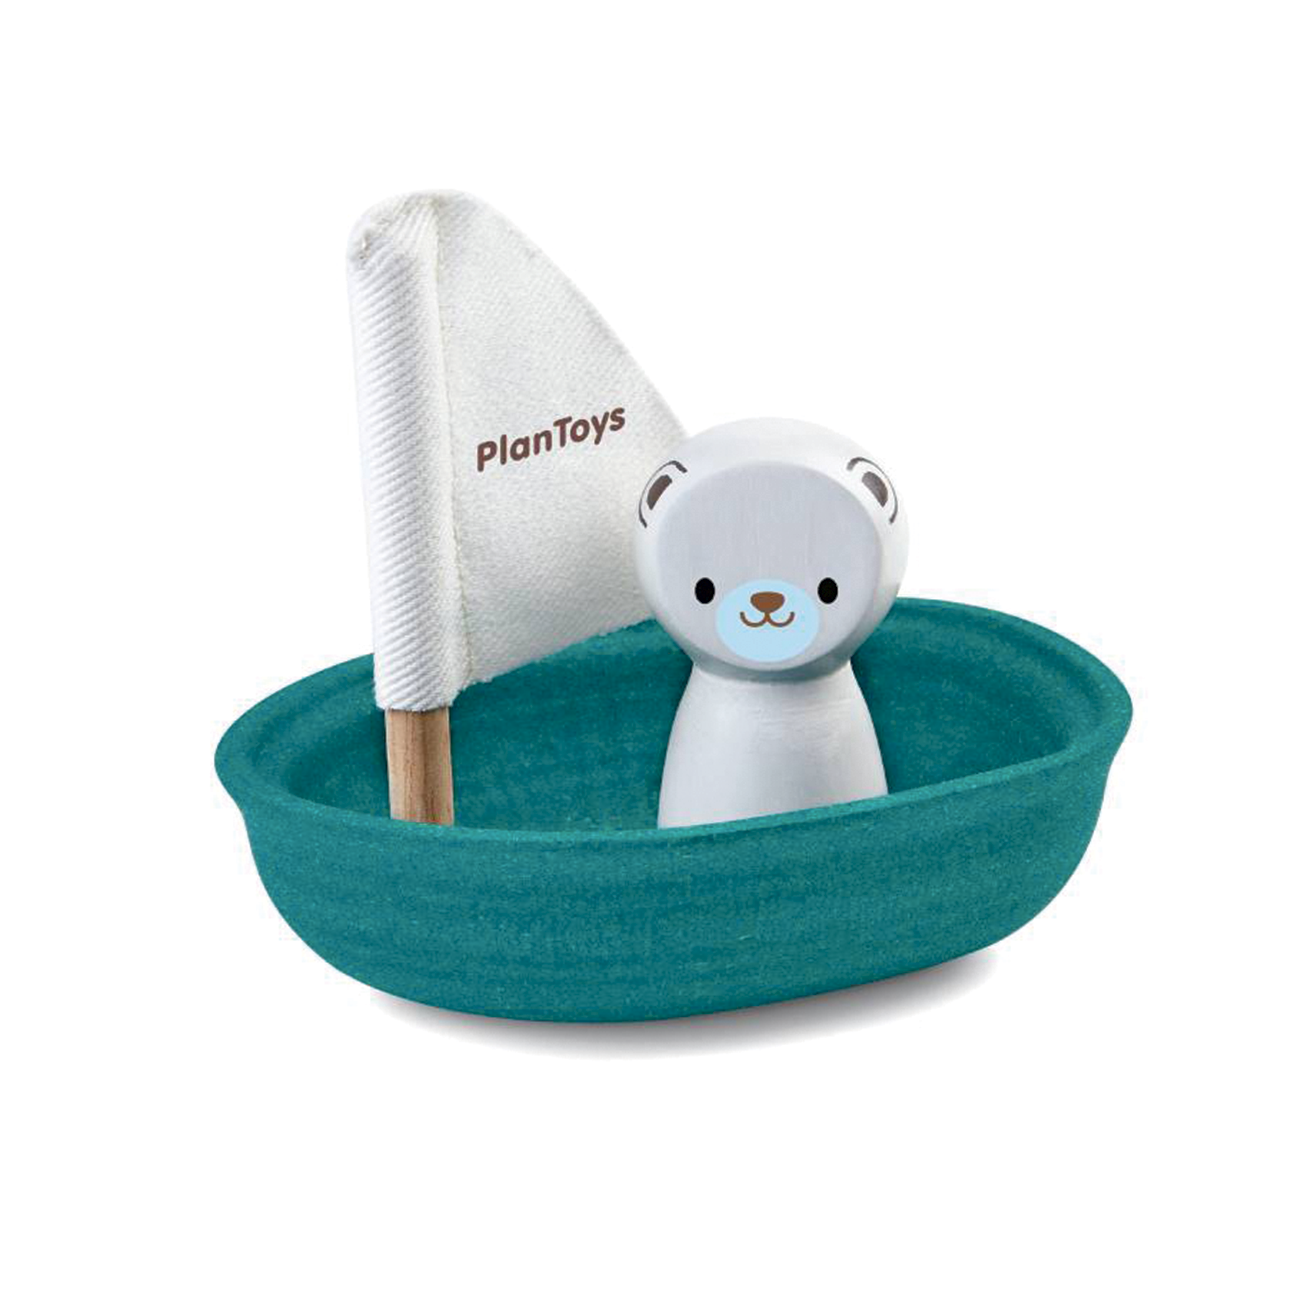 PlanToys Boat with a Polarbear